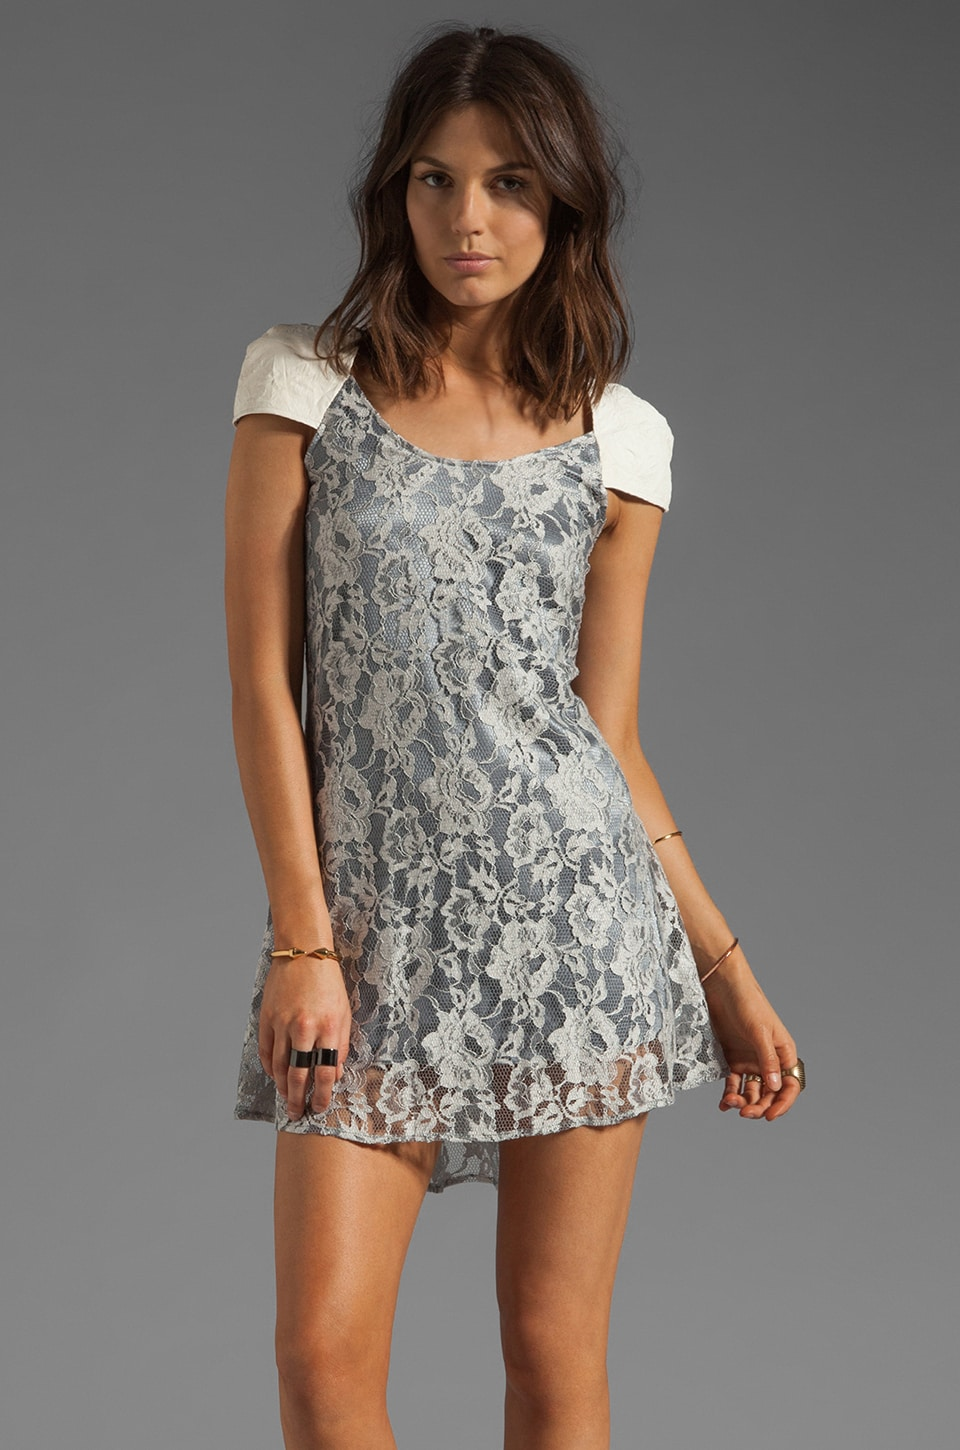 AGAIN Bouvier Lambskin Leather Detailed Lace Dress in White Lavender